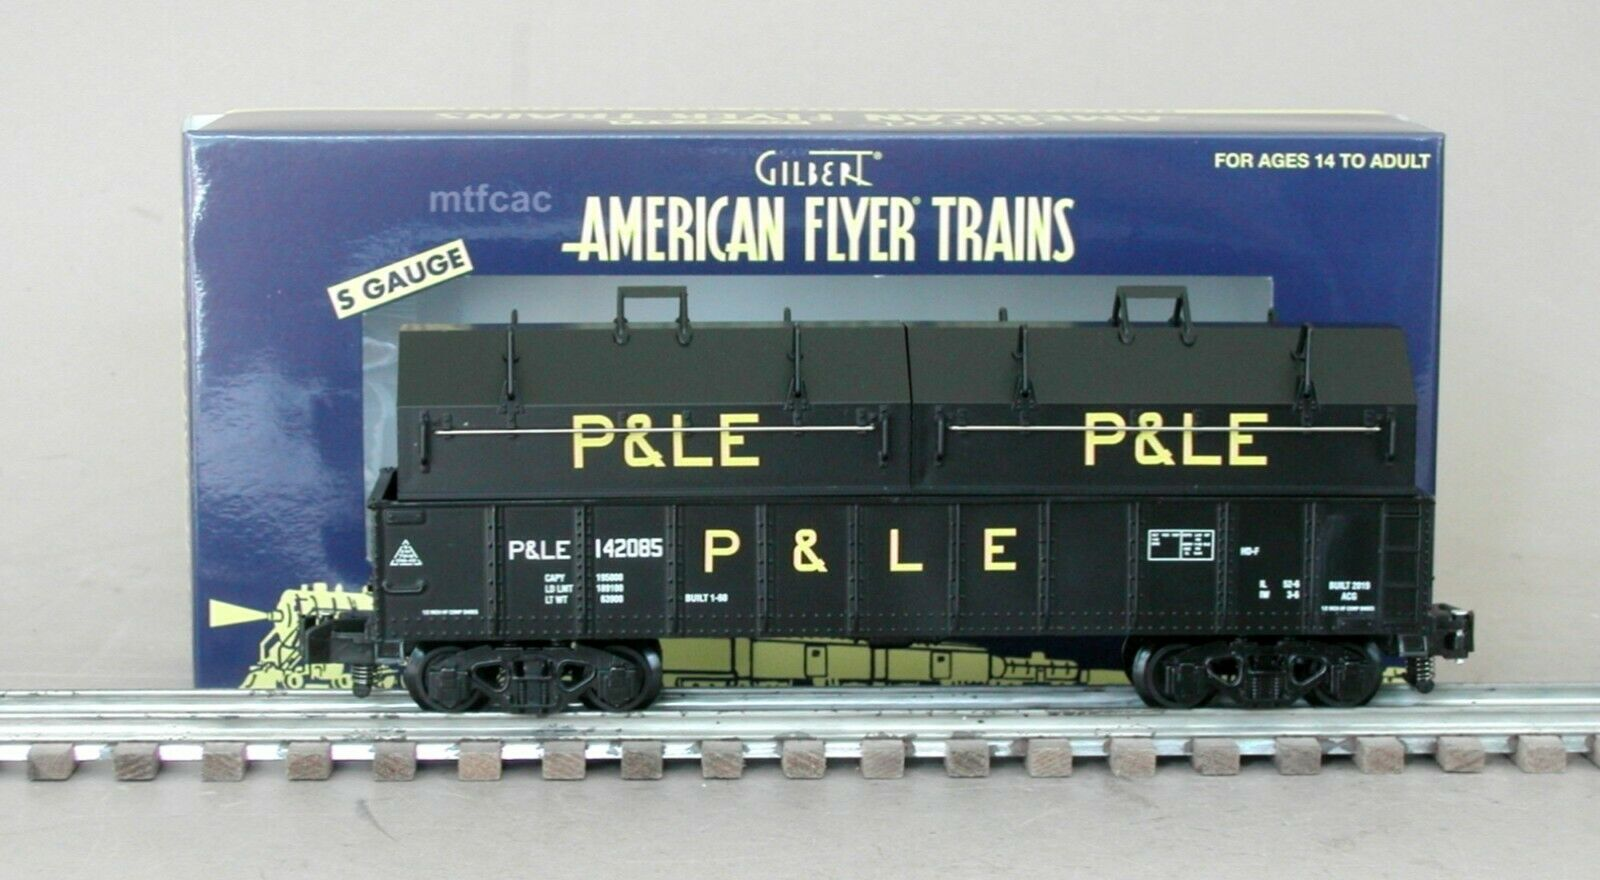 American Flyer 1919091 Pittsburgh & Lake Erie Coverot Gondola 142085 by Lionel